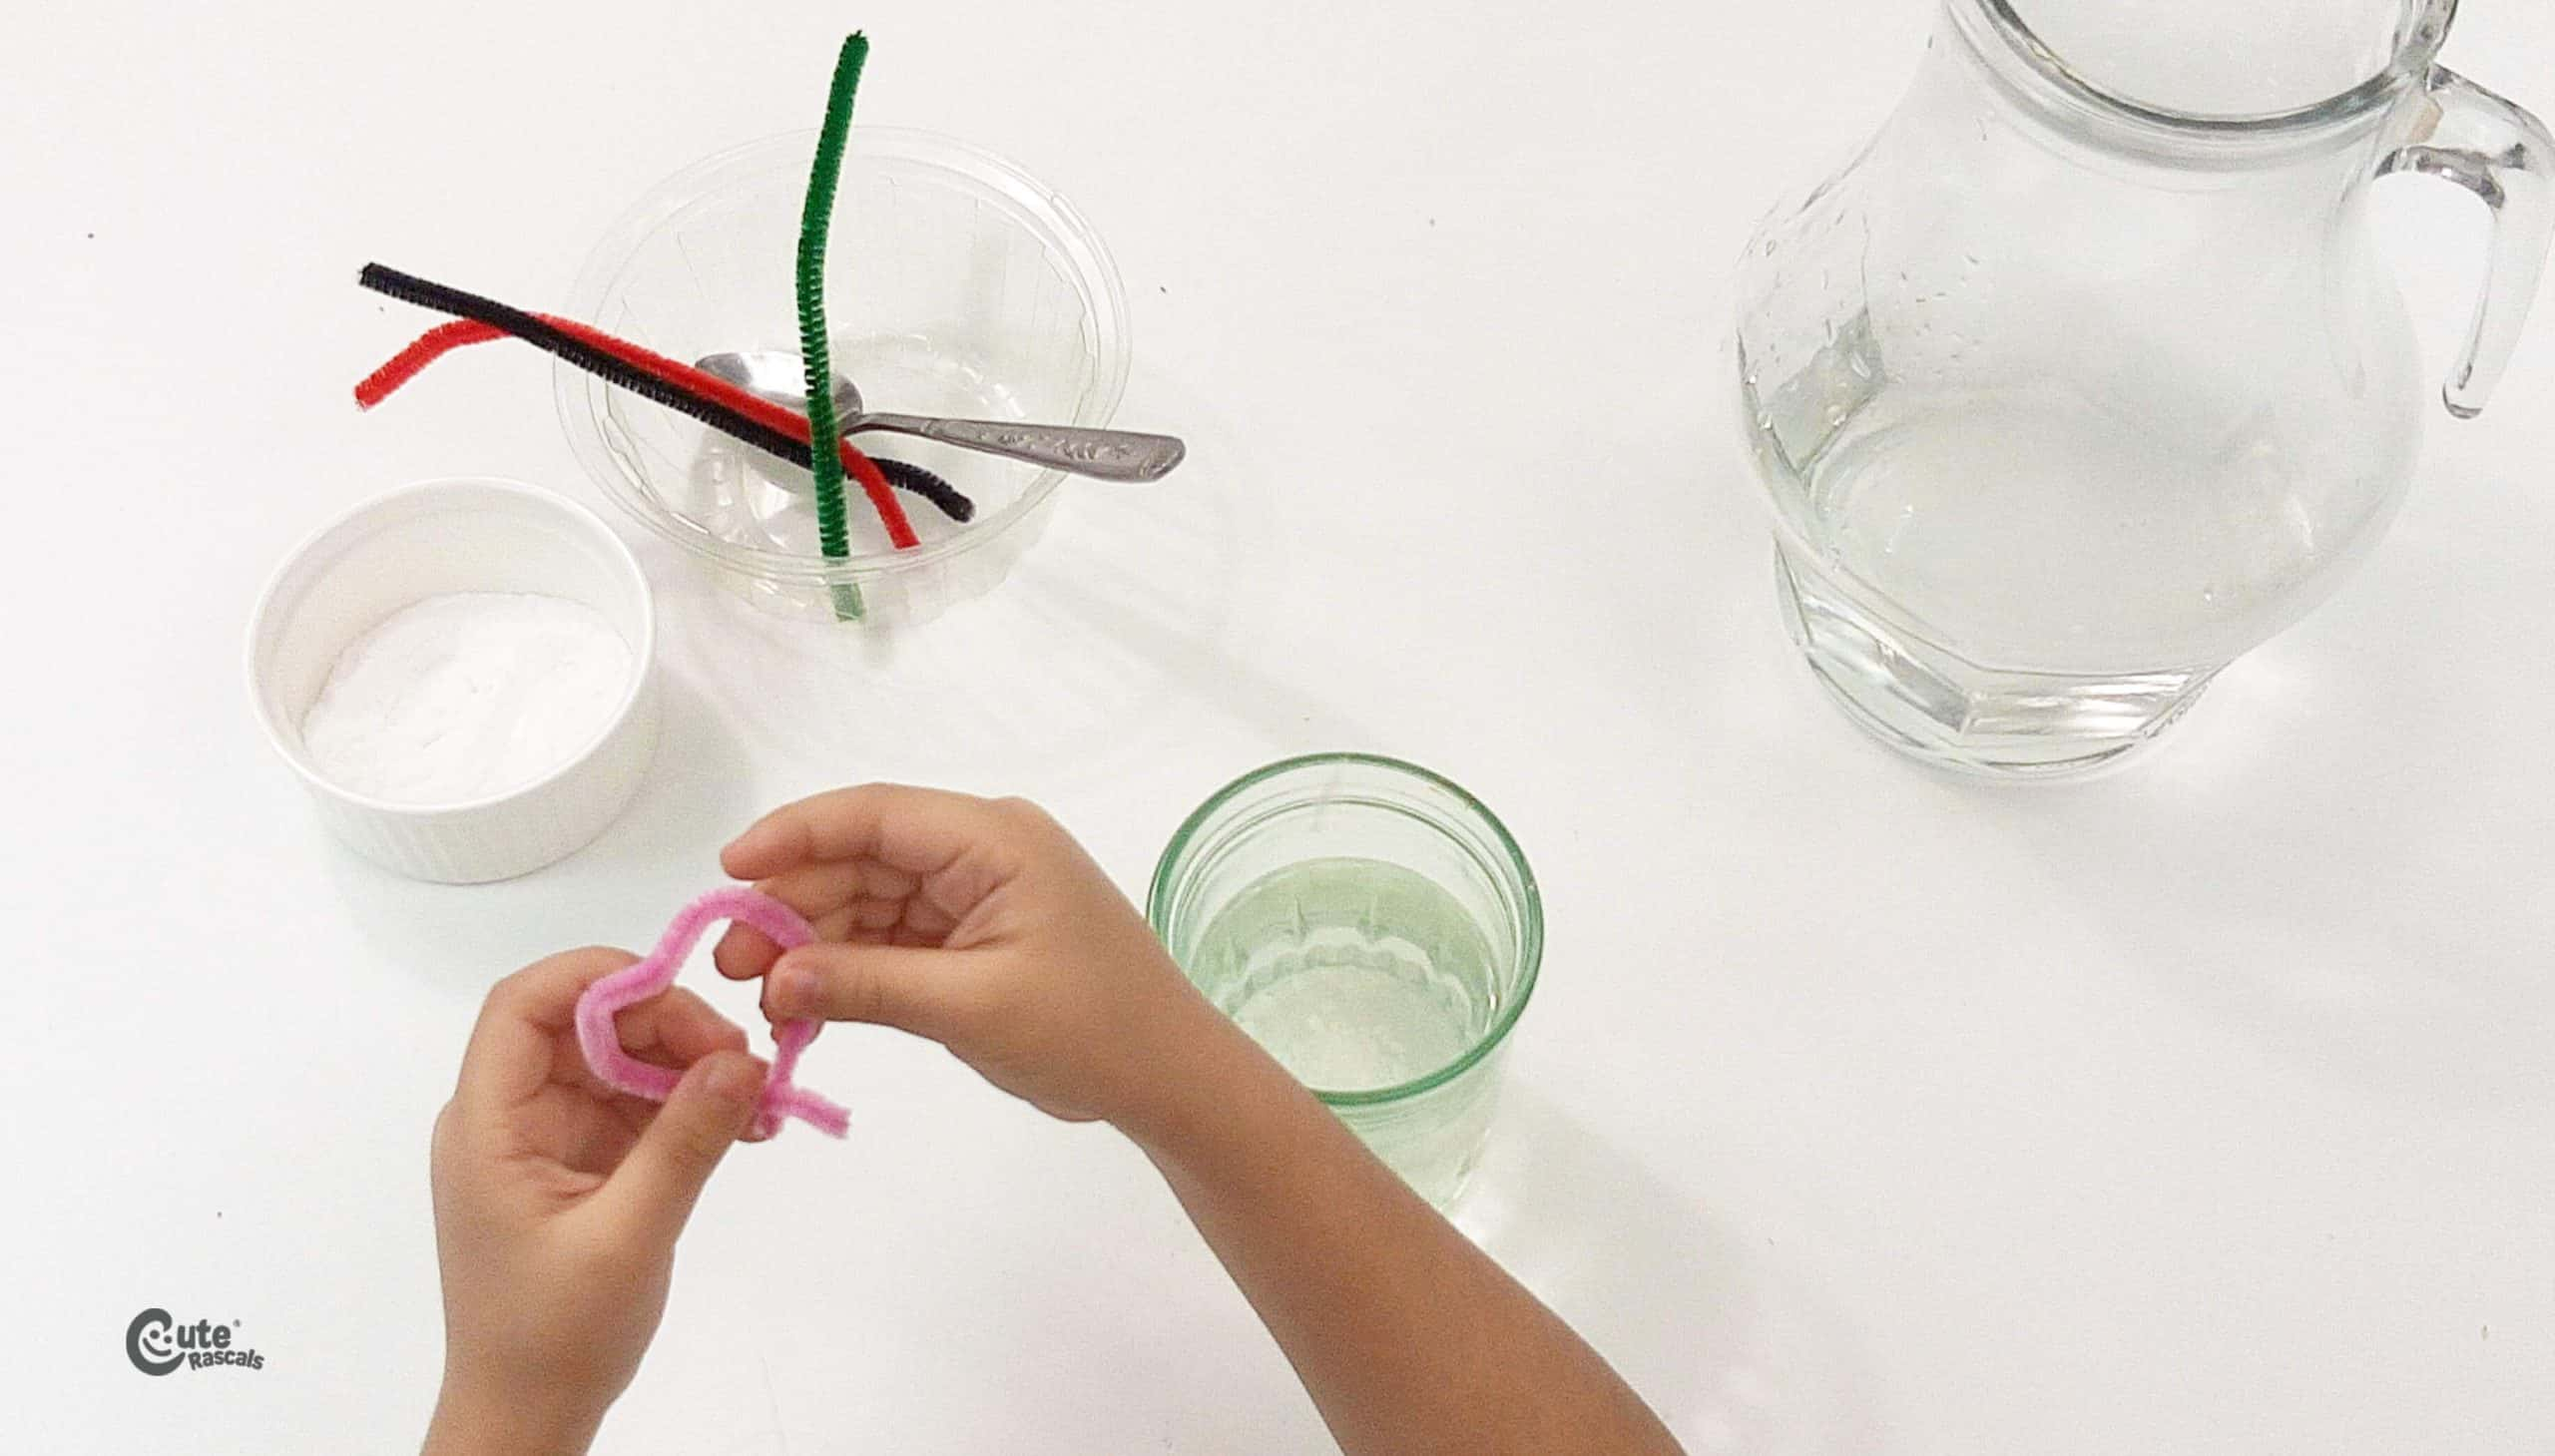 Make a chain of hearts with the pipe-cleaners